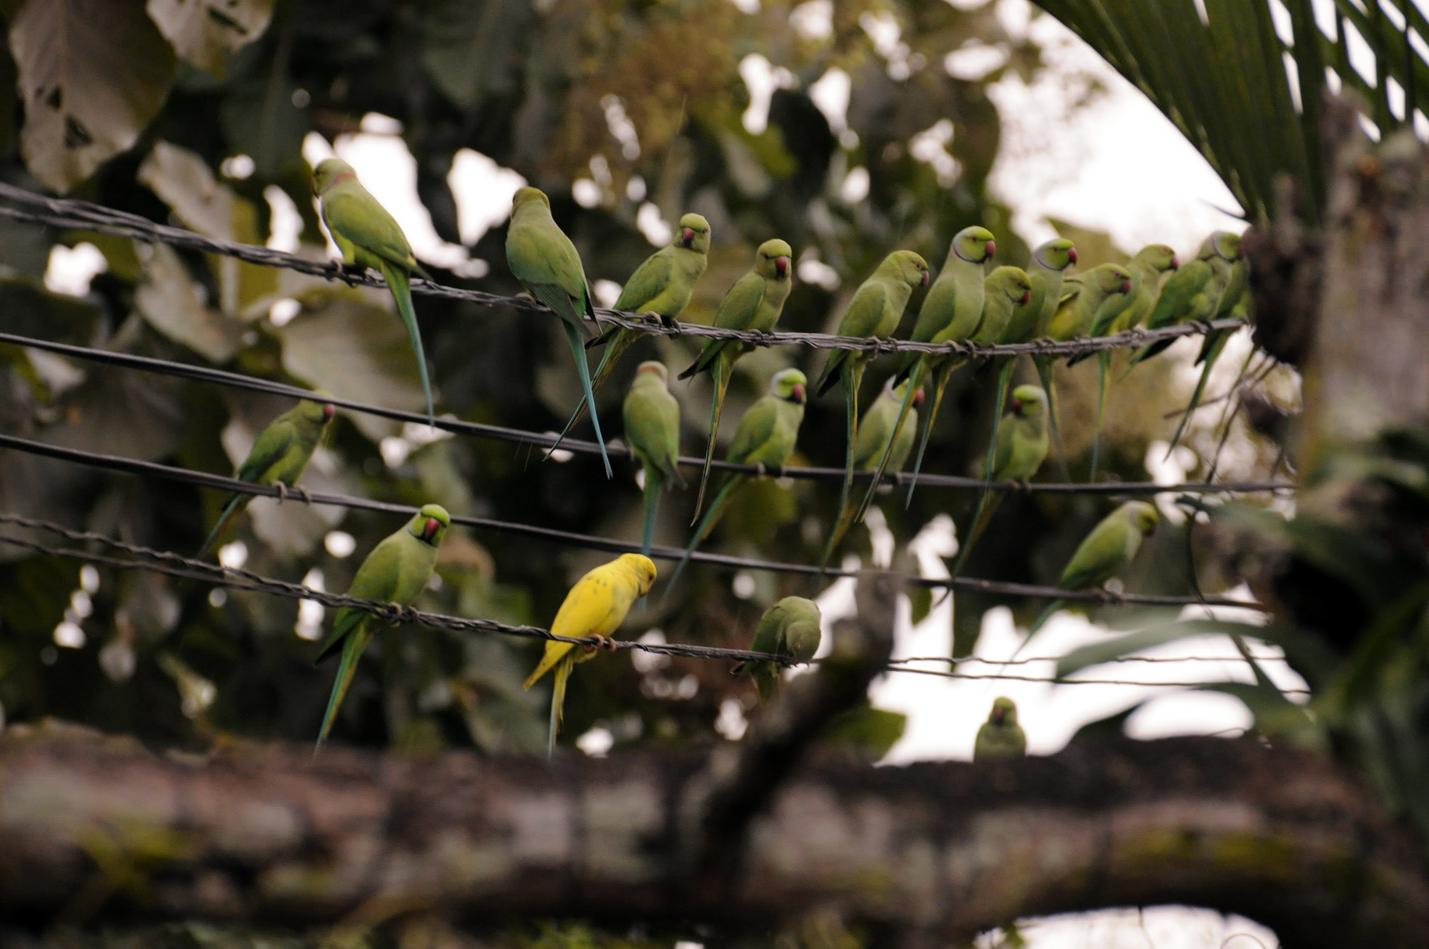 The Rose-ringed Parakeet is